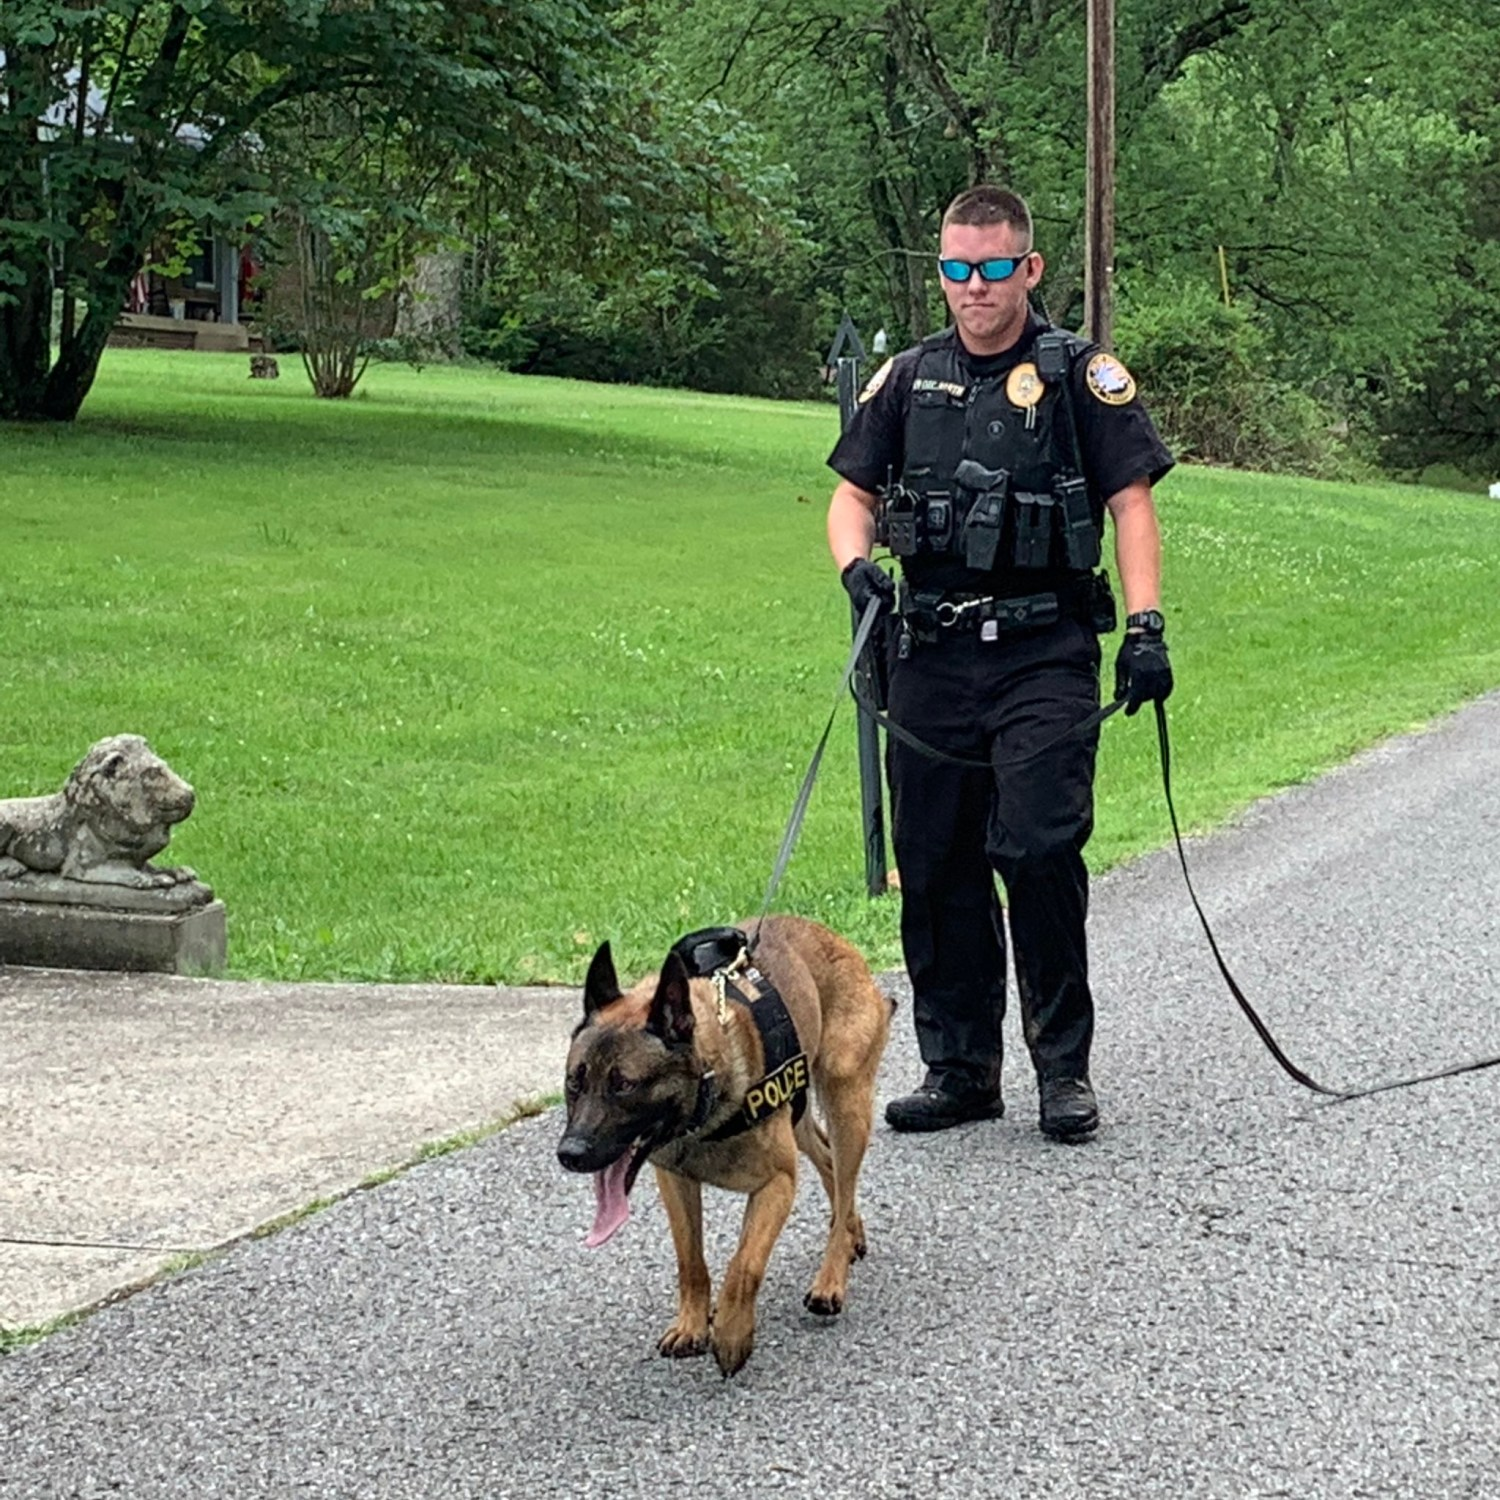 Officer Barth with K9 Majlo